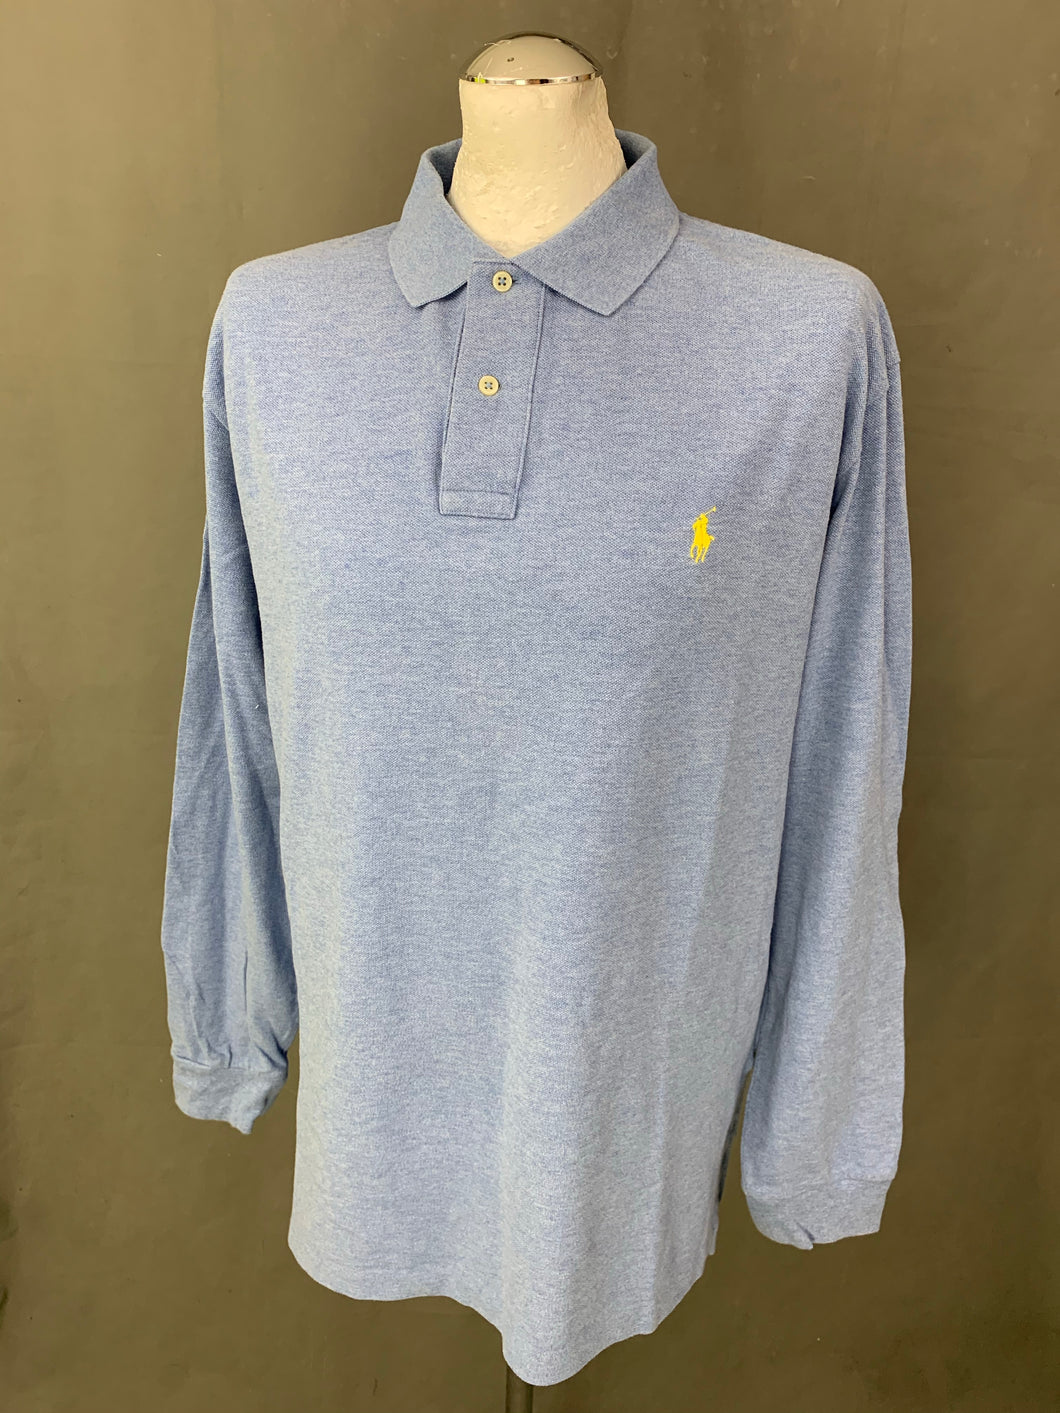 POLO RALPH LAUREN Mens Blue Long Sleeved POLO SHIRT Size XL Extra Large